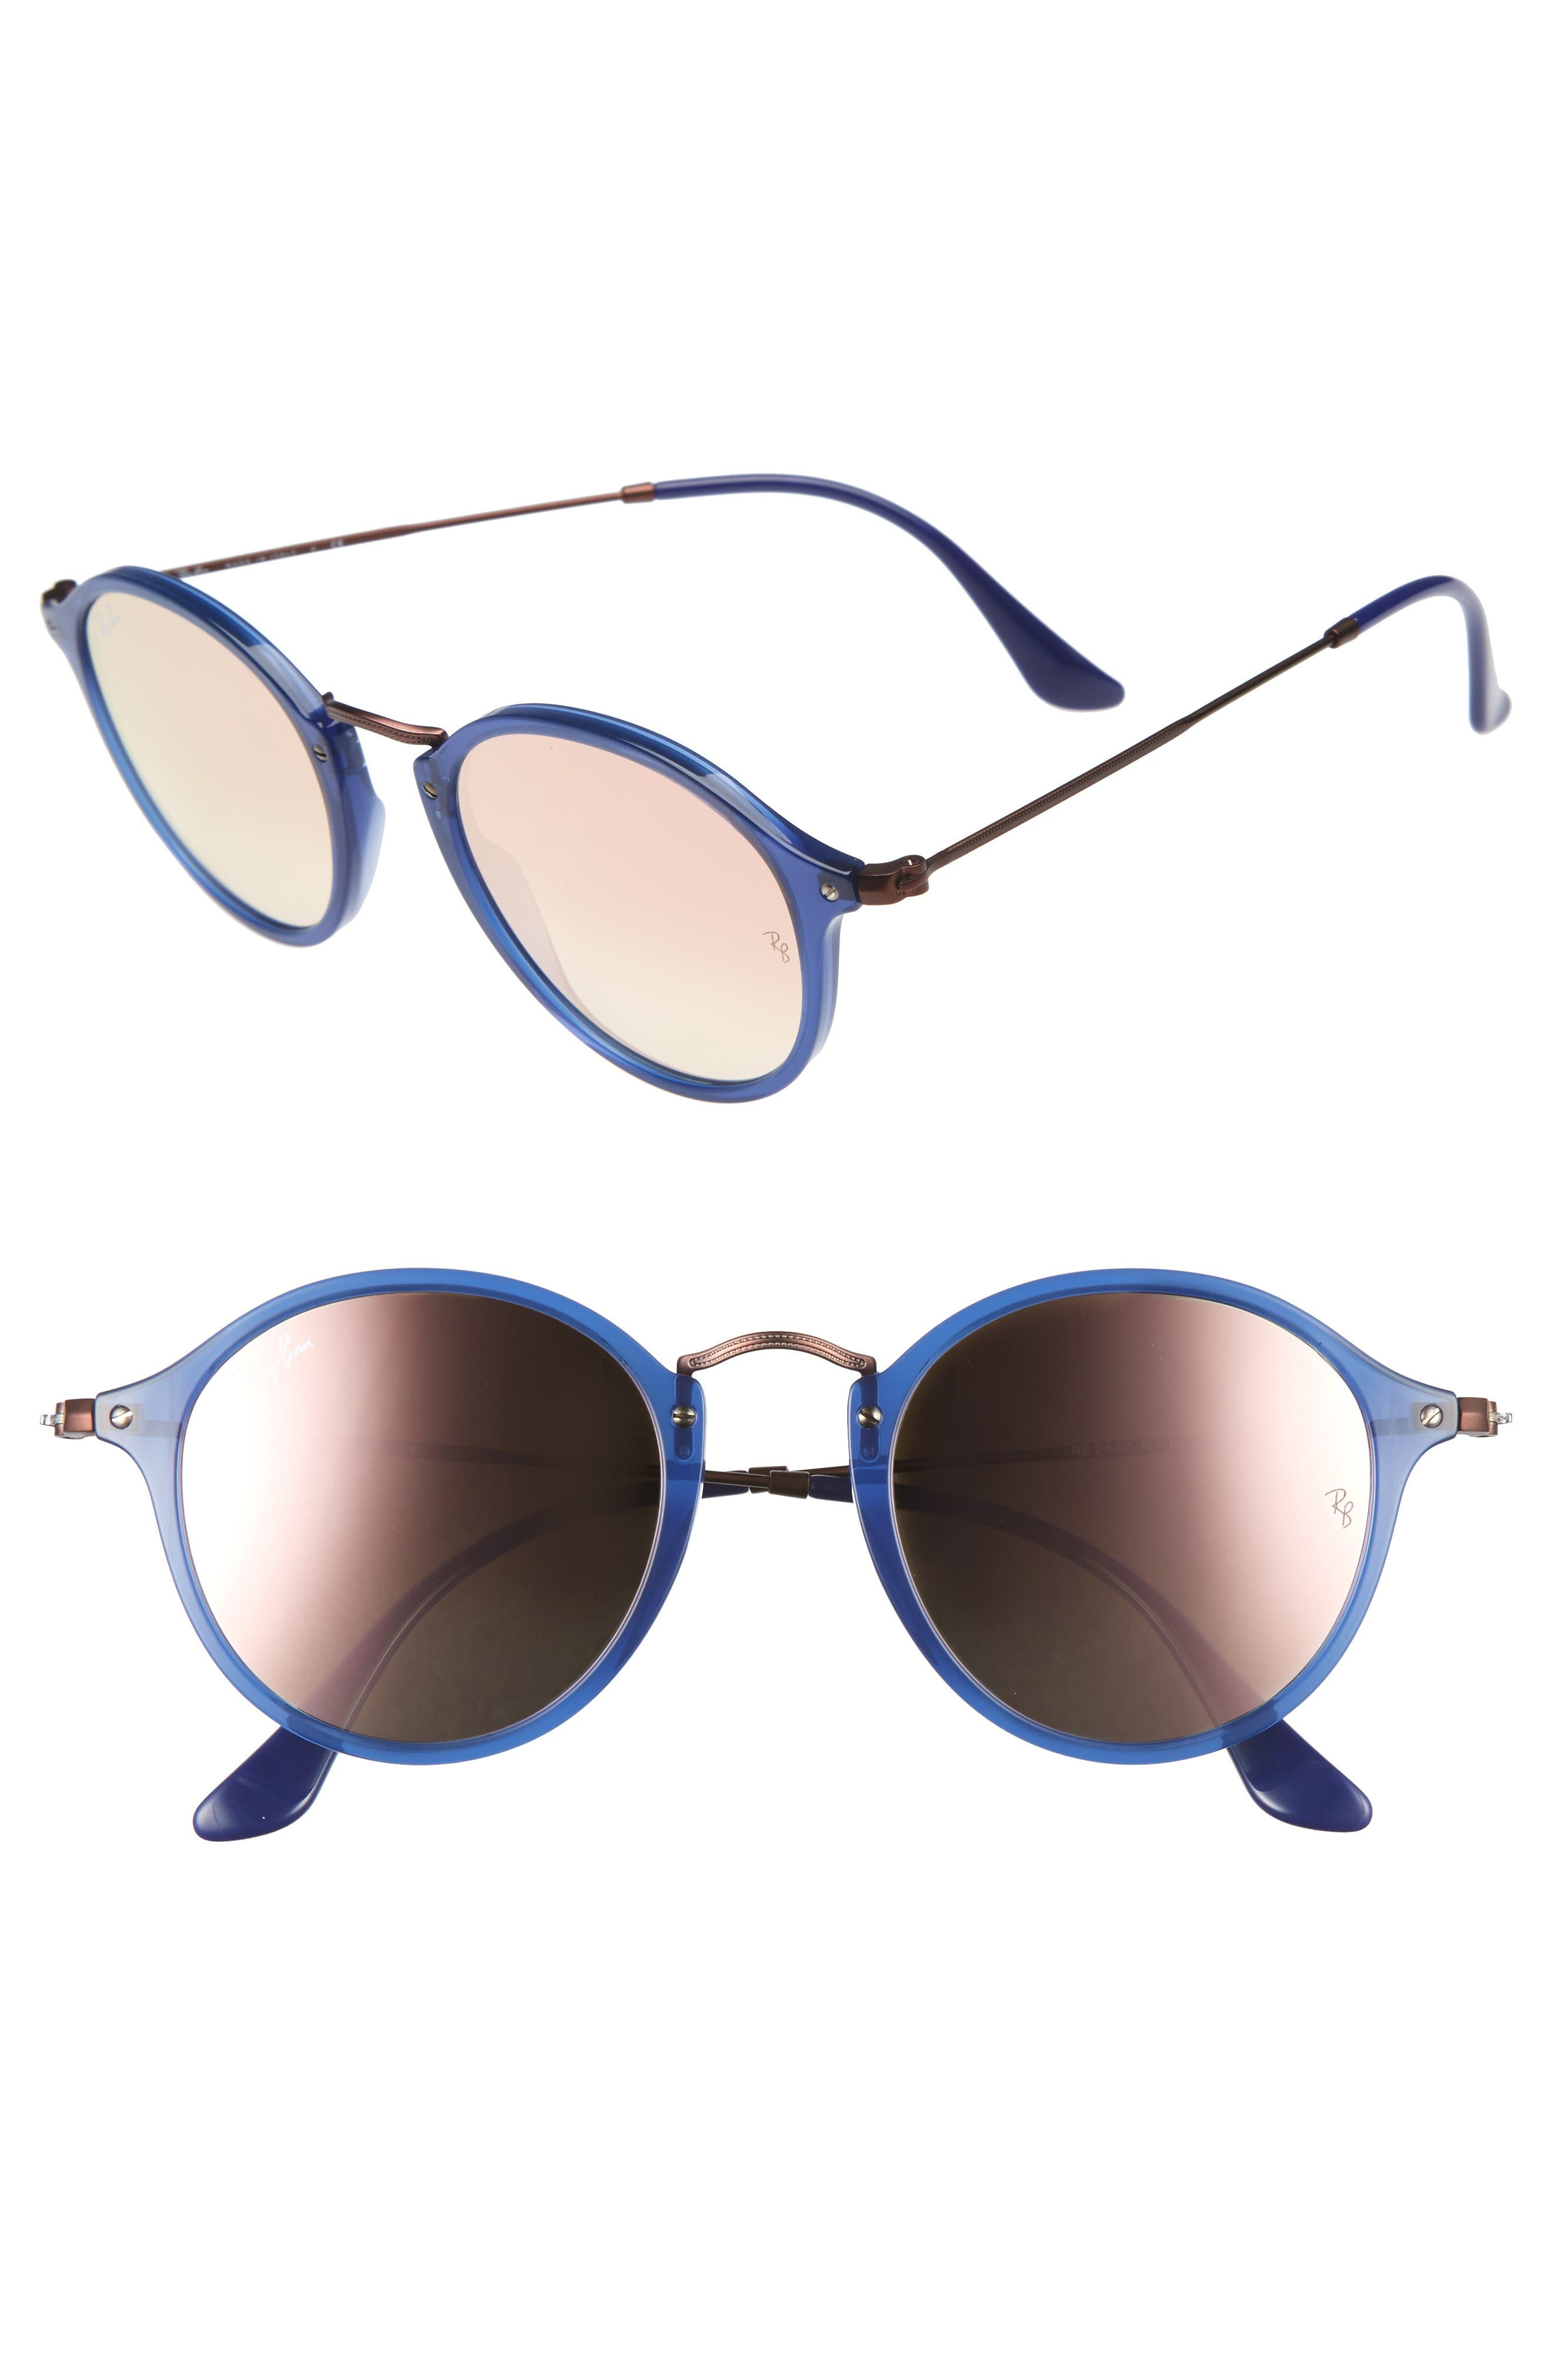 Main Image - Ray-Ban 49mm Round Sunglasses